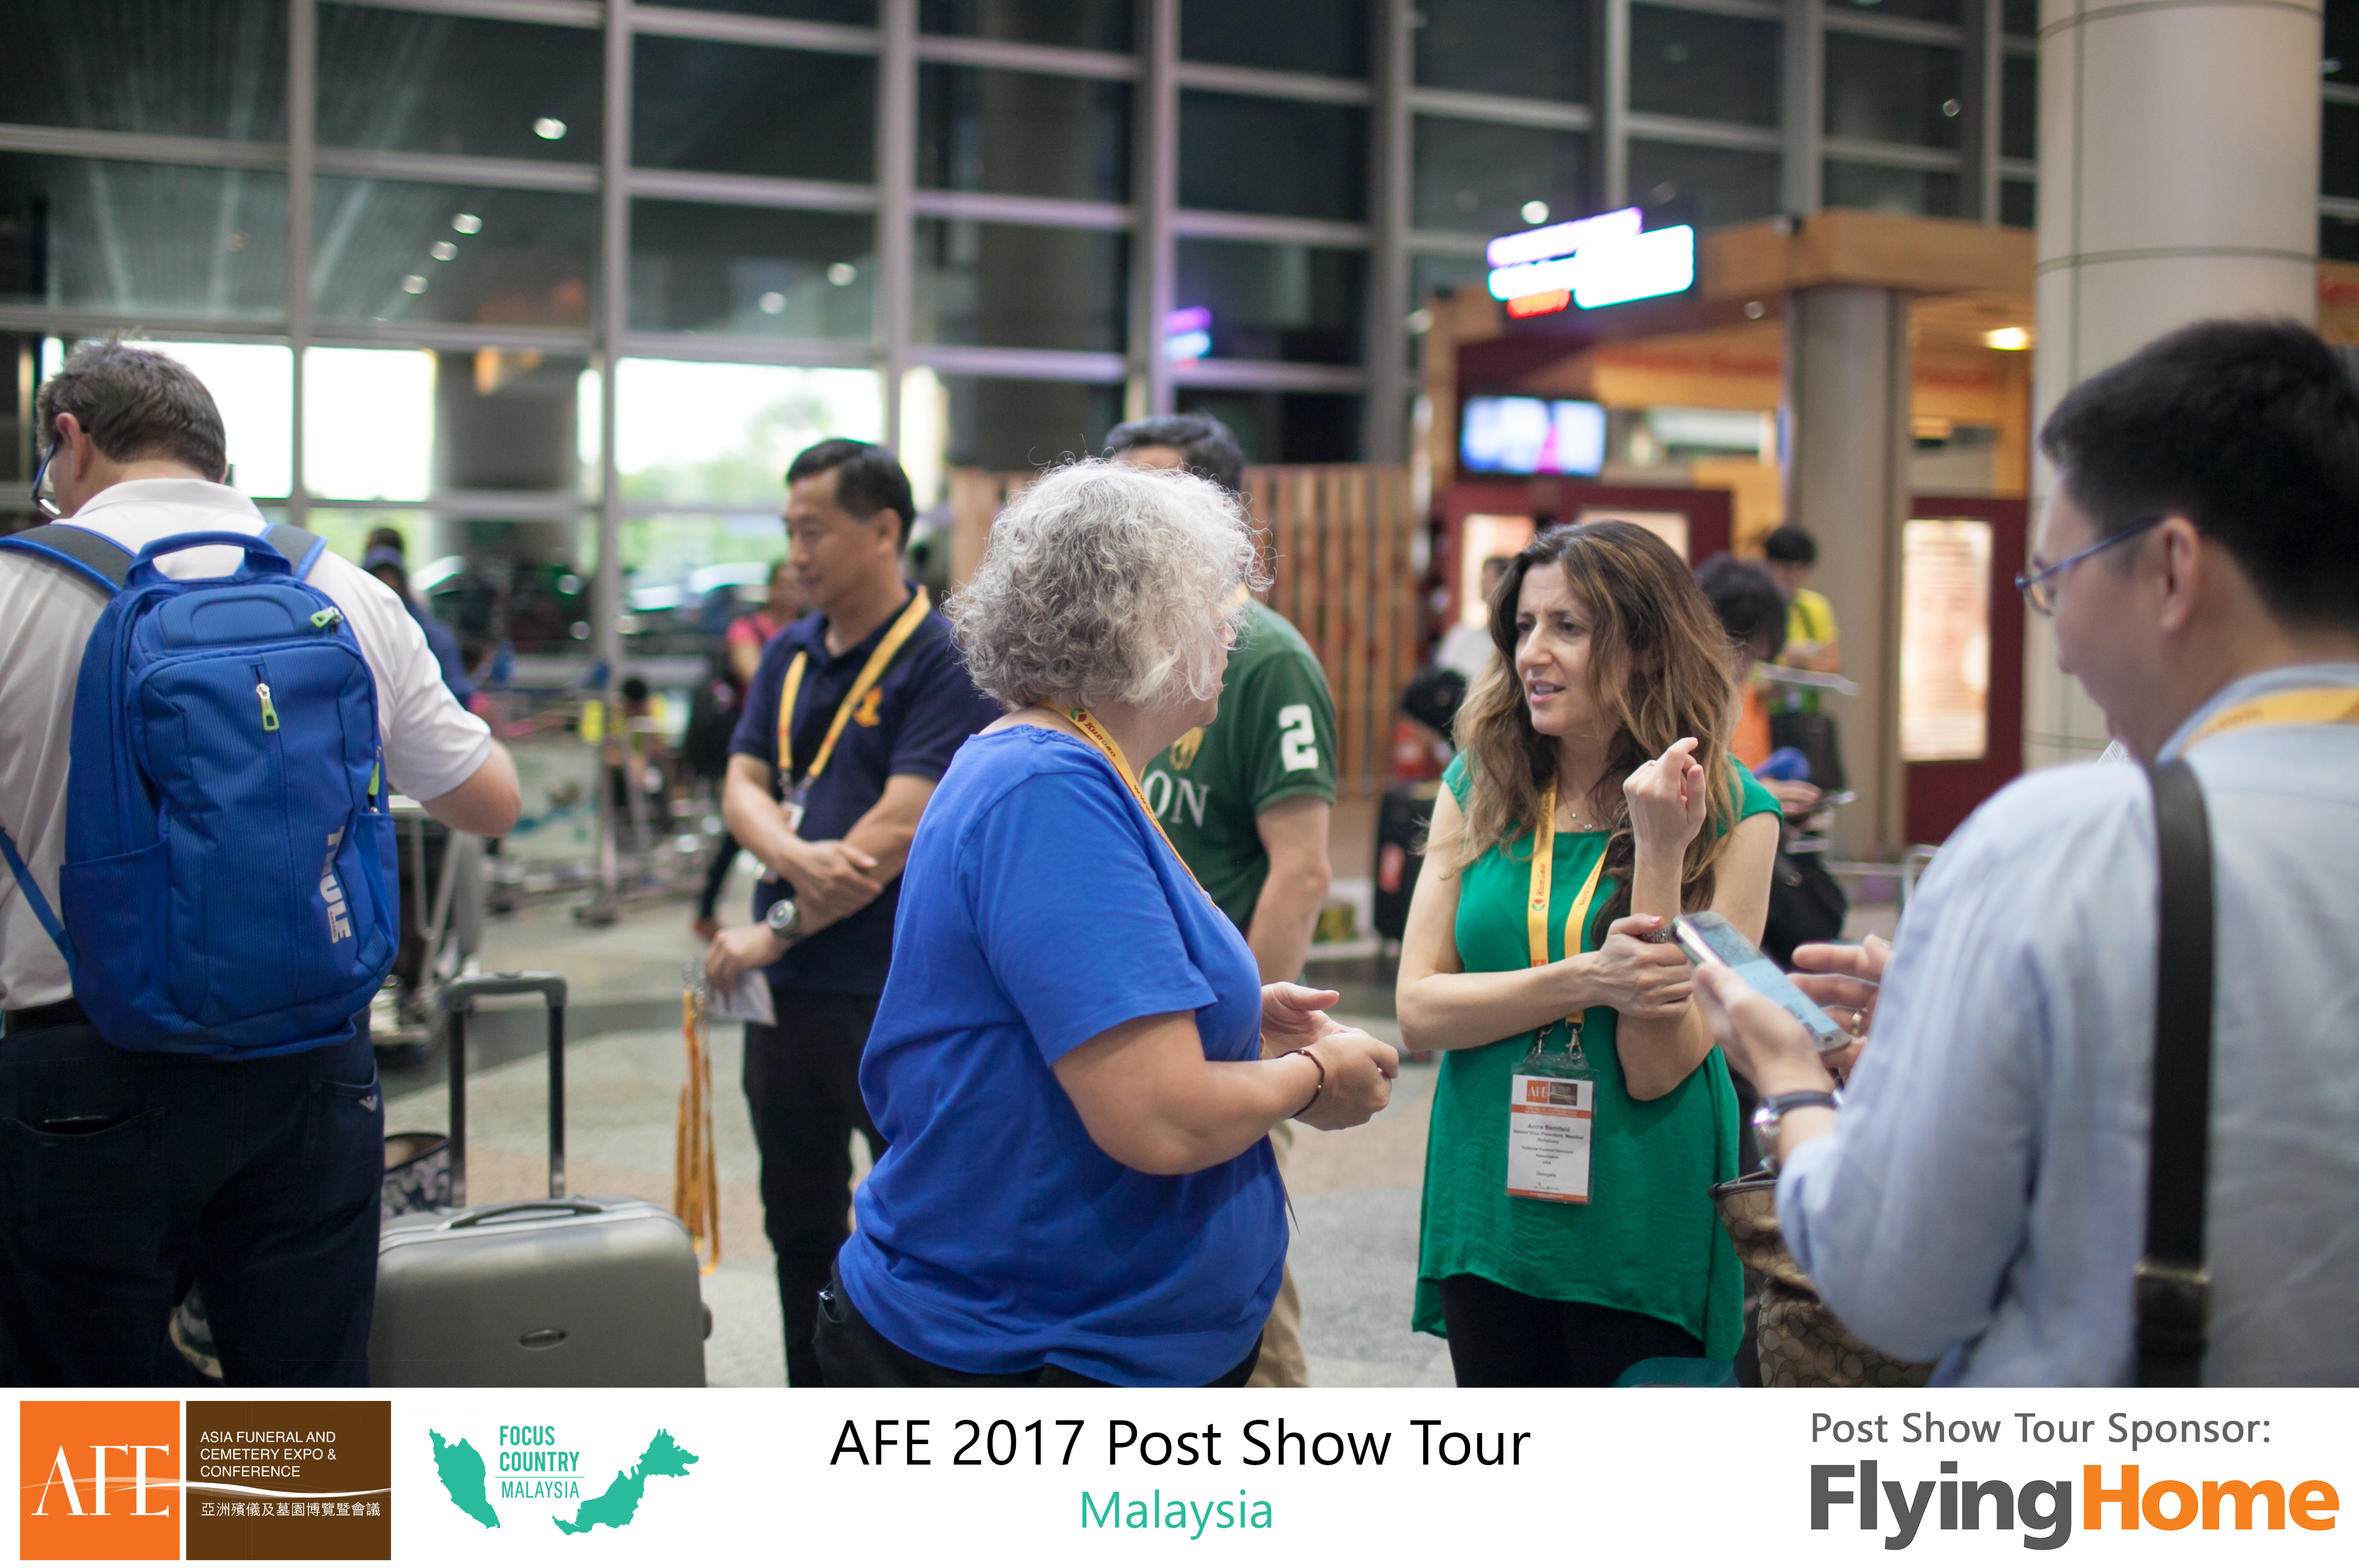 AFE Post Show Tour 2017 Day 1 - 30